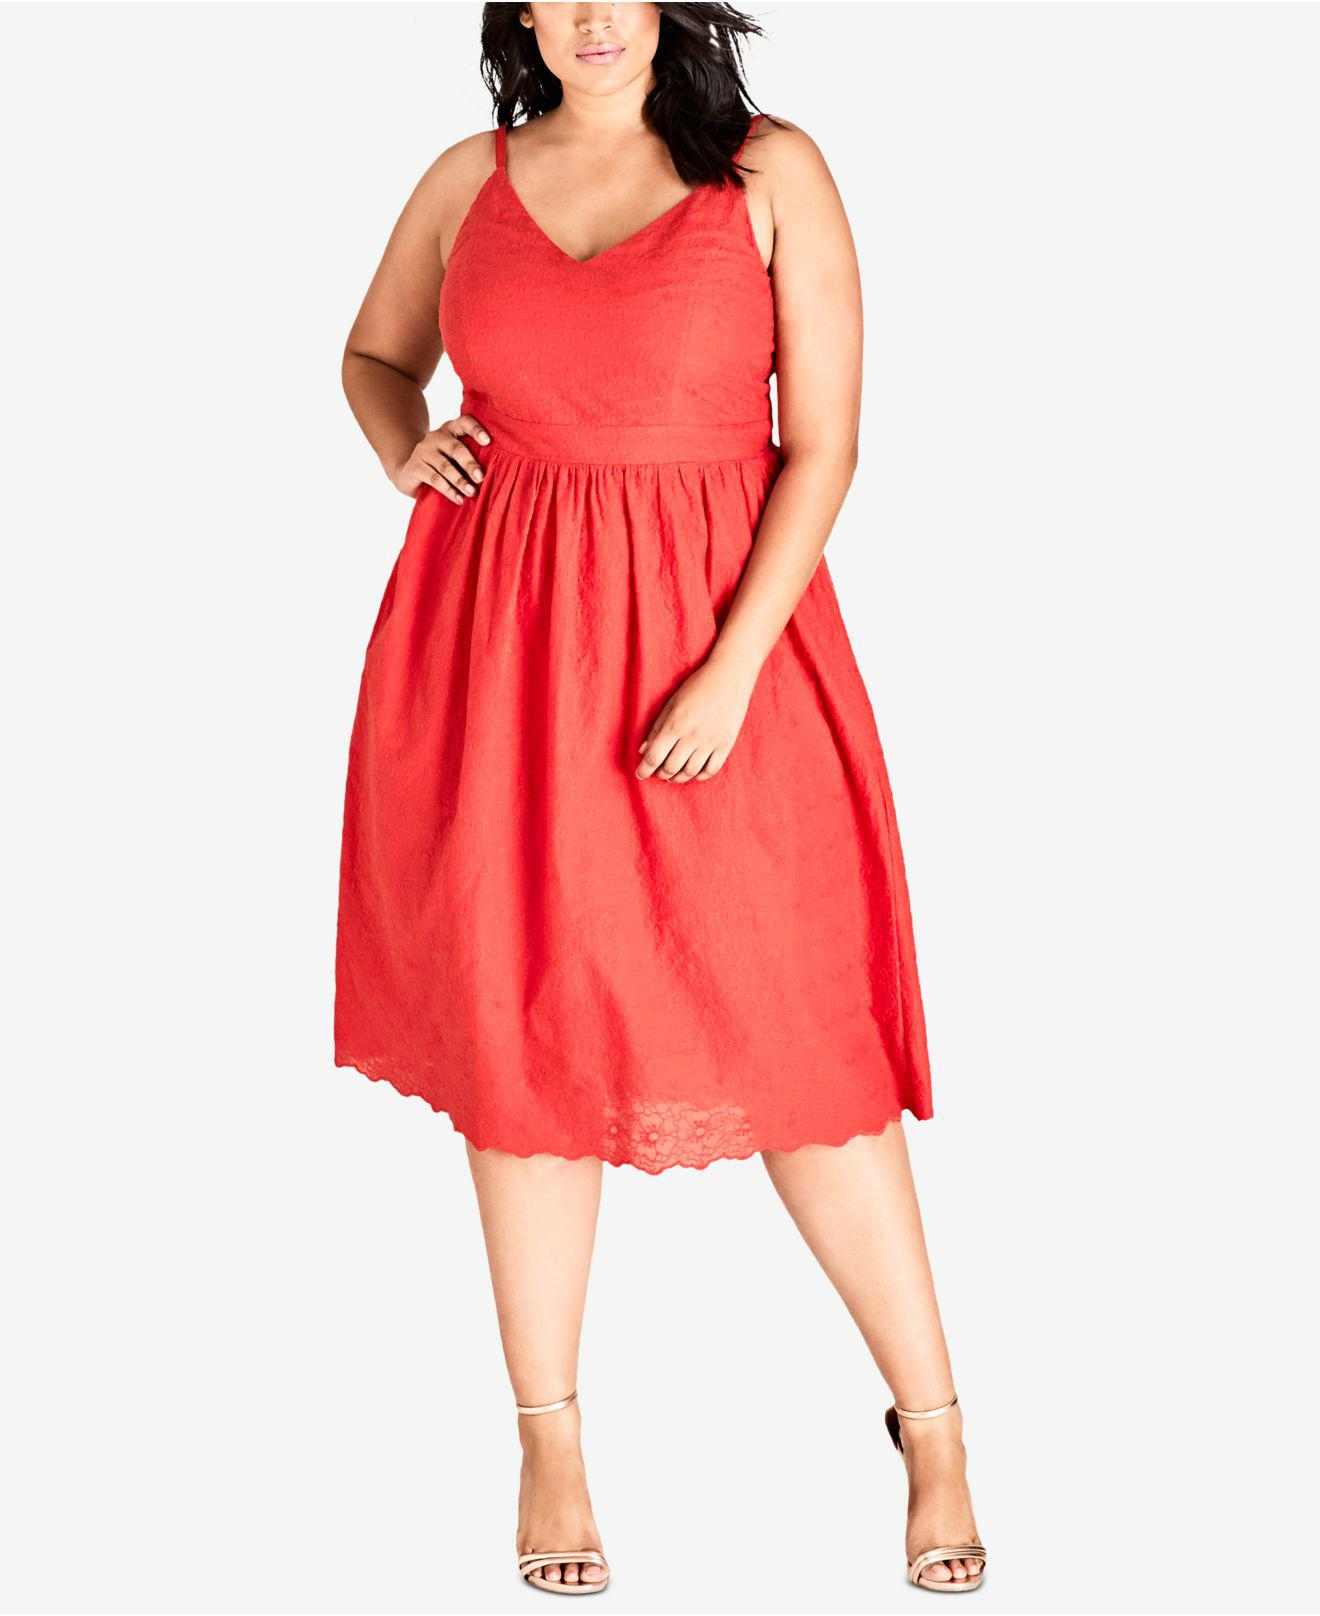 118491b31a5 City Chic. Women s Trendy Plus Size Cotton Embroidered Fit   Flare Dress